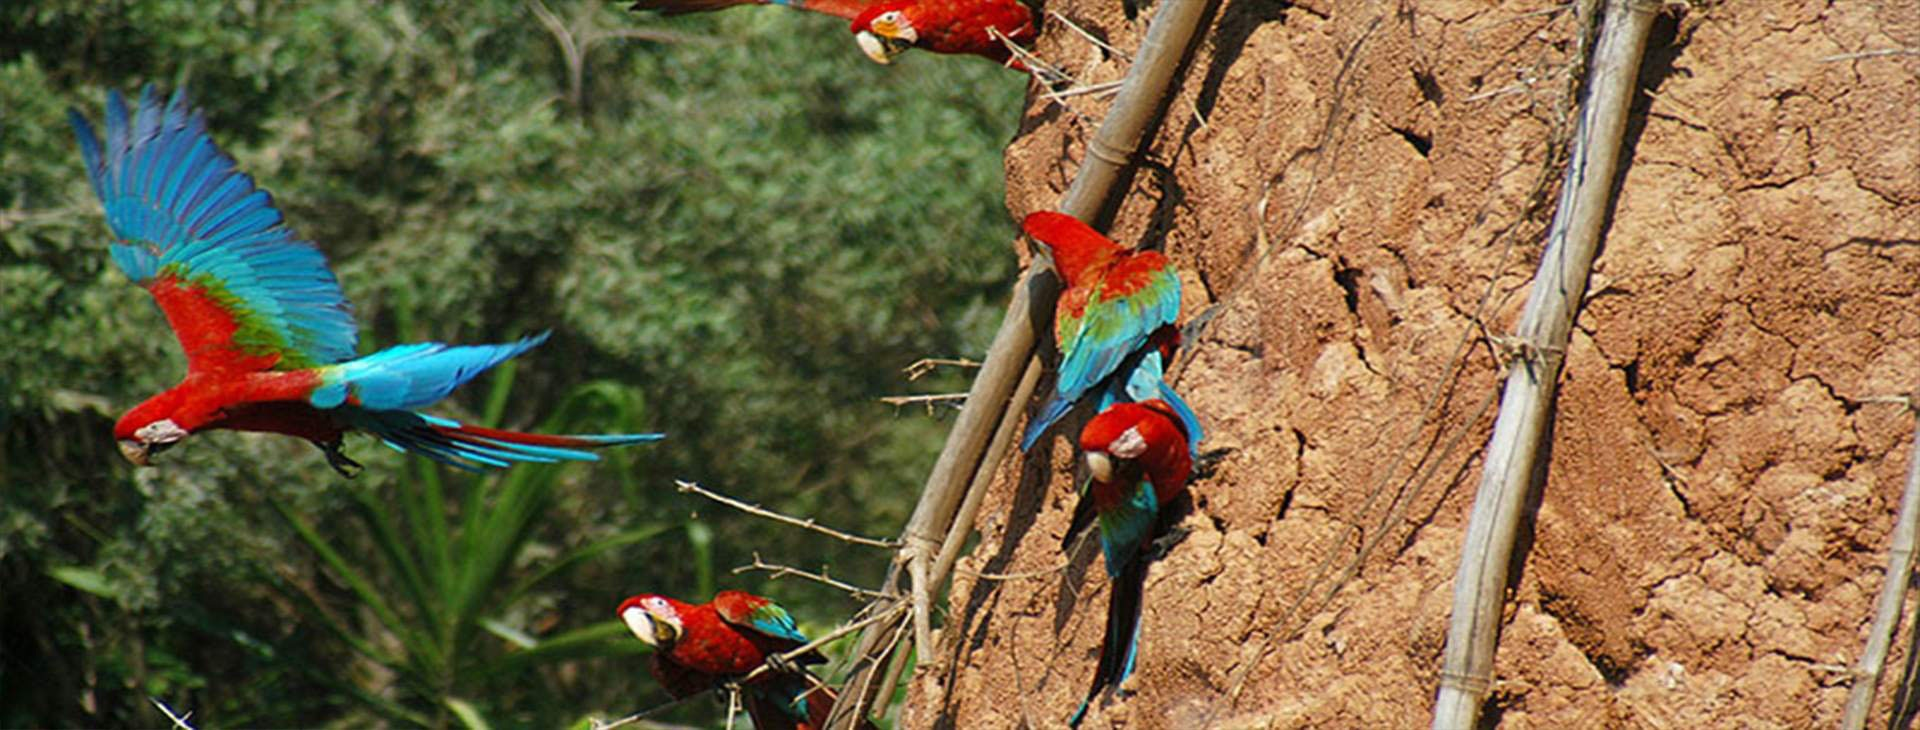 Amazon Tour Sandoval Lake 2dias - Amazon Wildlife Peru Travel